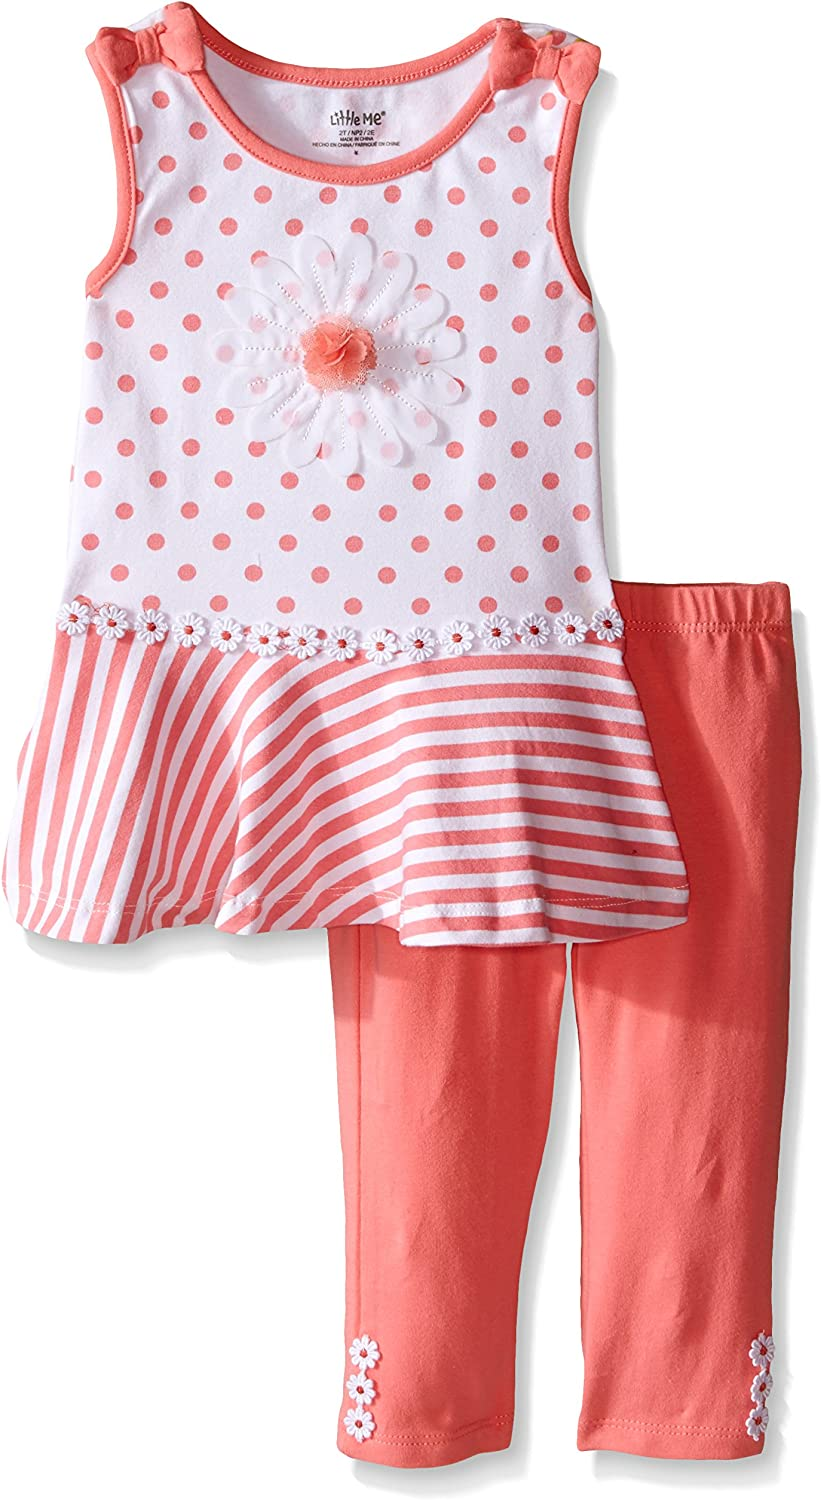 flowers Scalable tunic clothing baby romantic grow with me girl